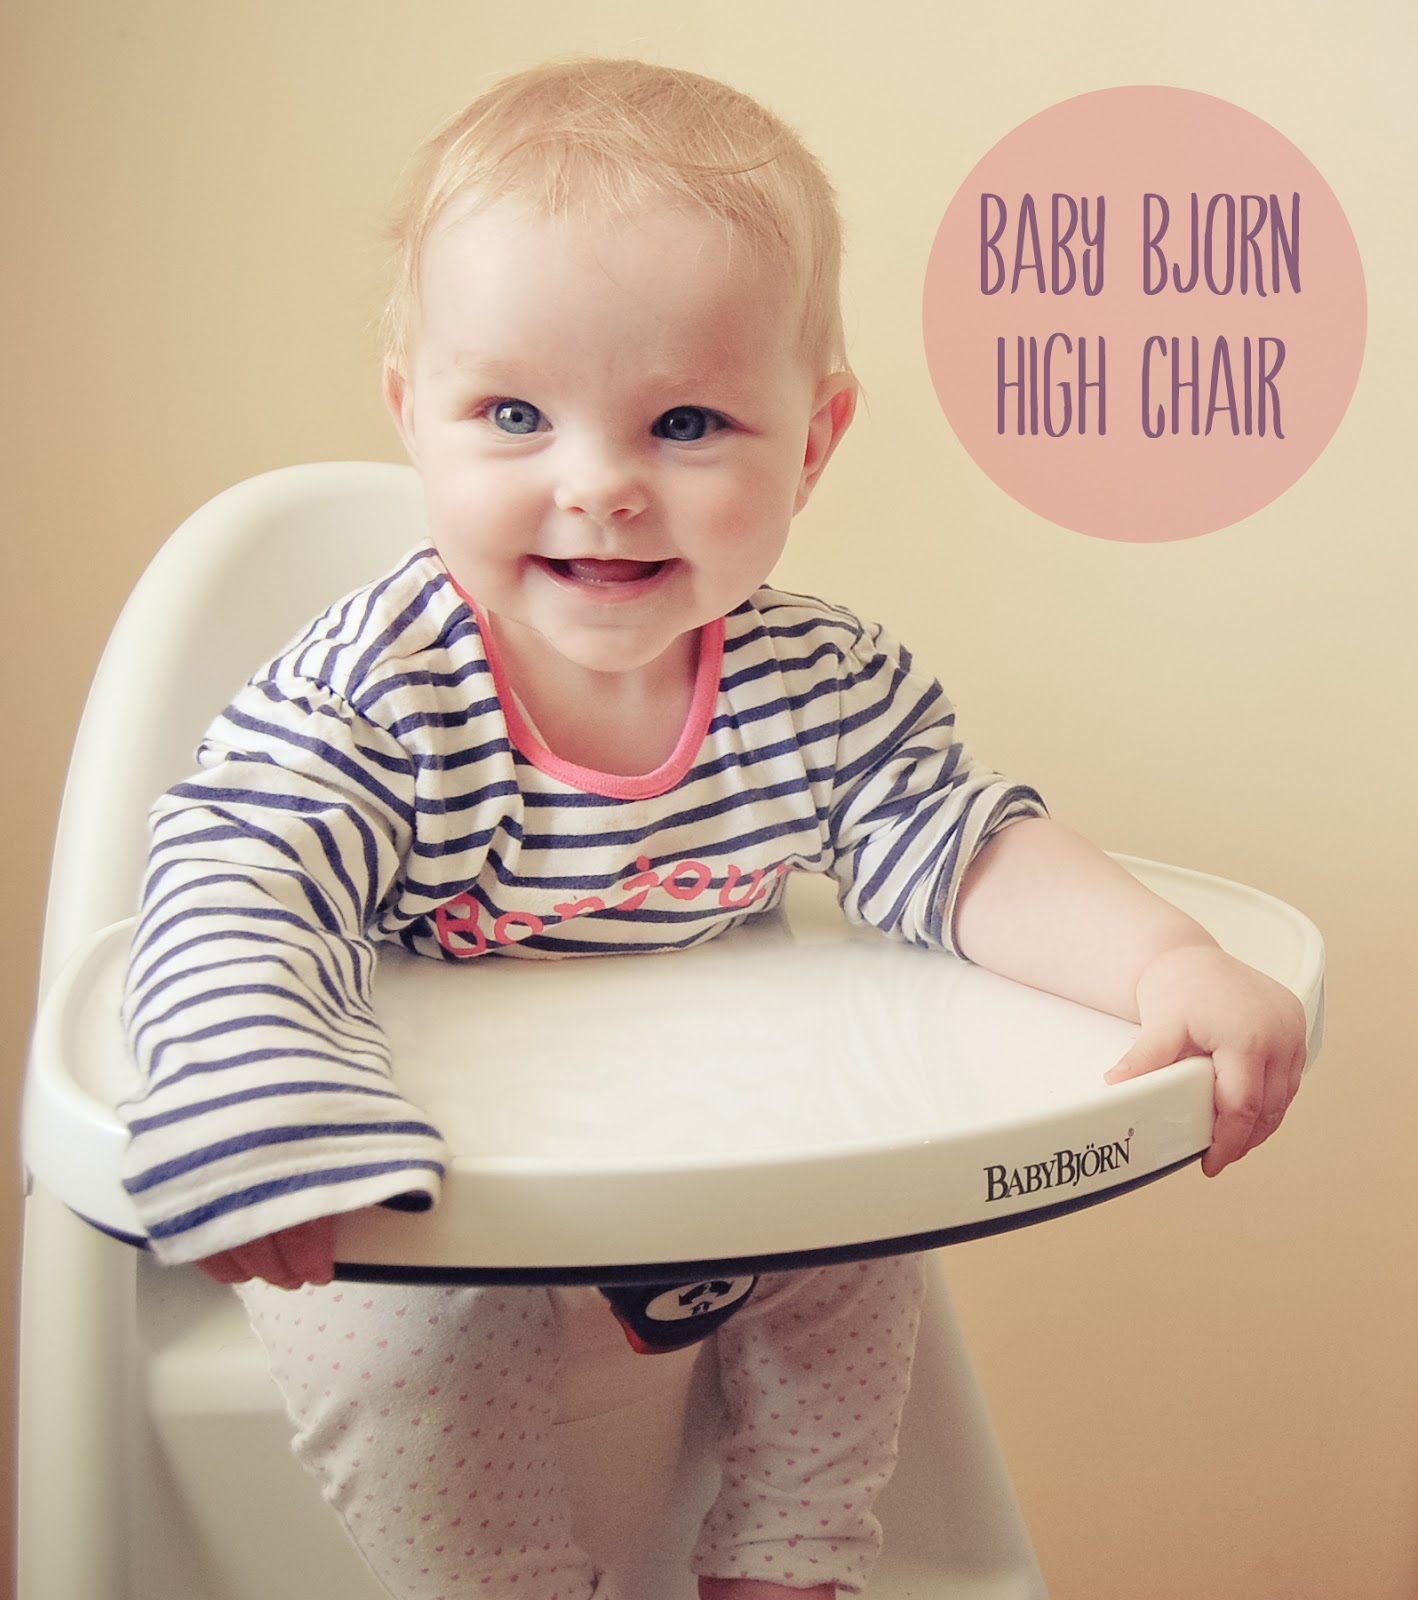 baby bjorn high chair red and black white adirondack chairs wood review paperblog